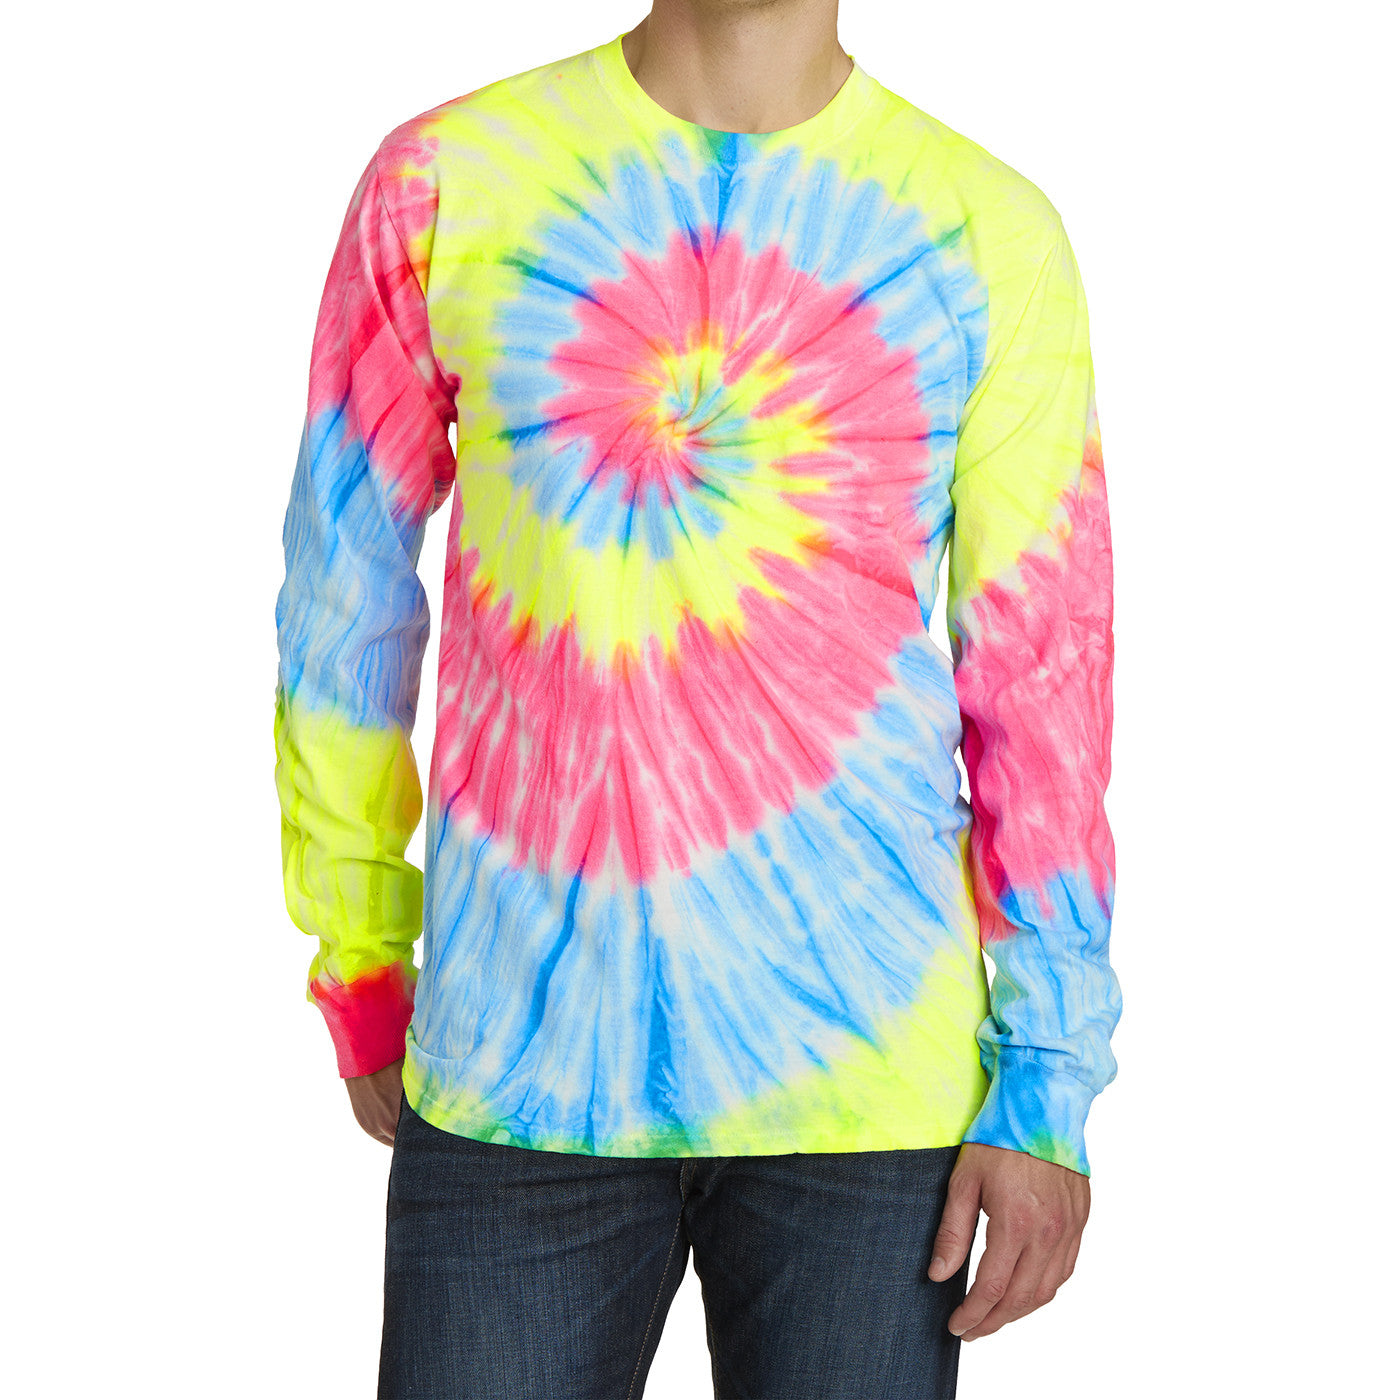 Men's Tie-Dye Long Sleeve Tee - Neon Rainbow - Front